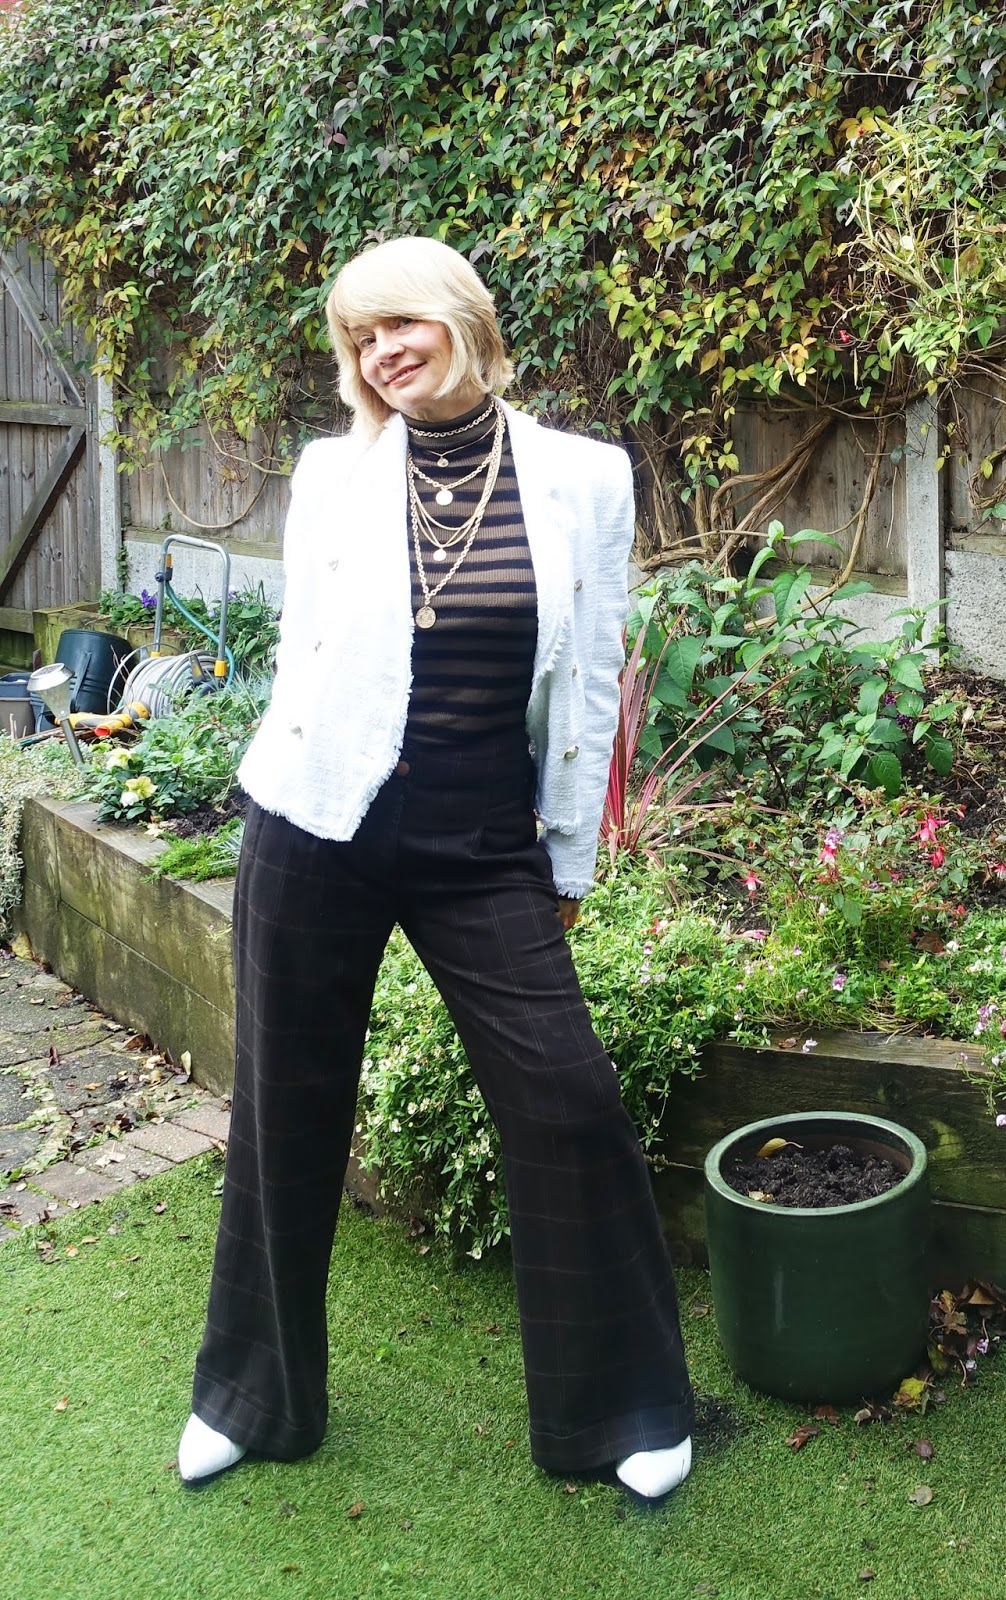 Gail Hanlon from over-50s style blog Is This Mutton takes two trends, mock neck jumper and layered coin necklace, and creates an outfit of brown and white suitable for office to evening wear